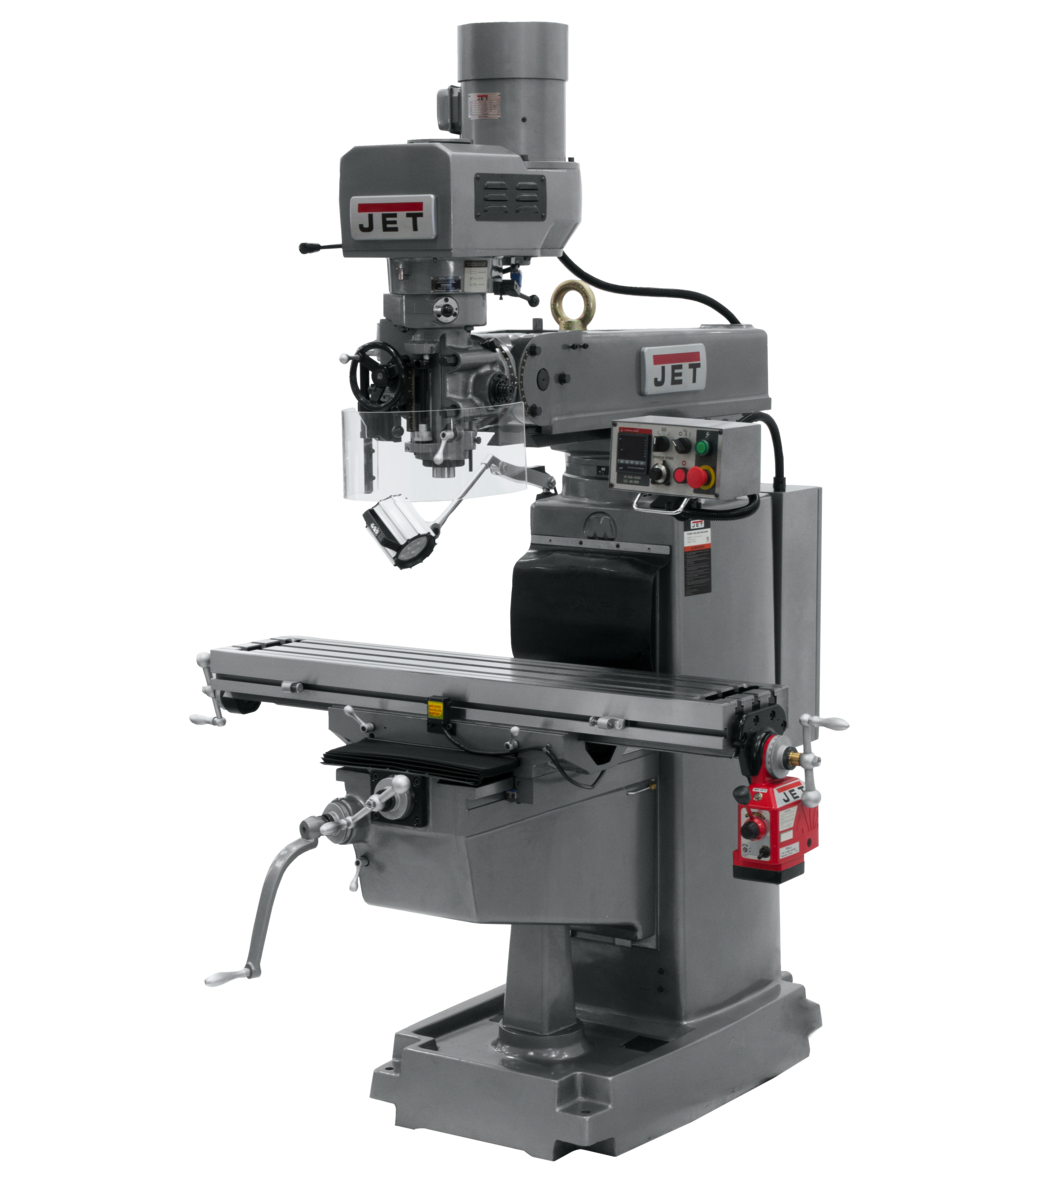 JTM-1050EVS2/230 With 3-Axis Acu-Rite 203 DRO with X, Y and Z Powerfeeds With Air Powered Draw Bar